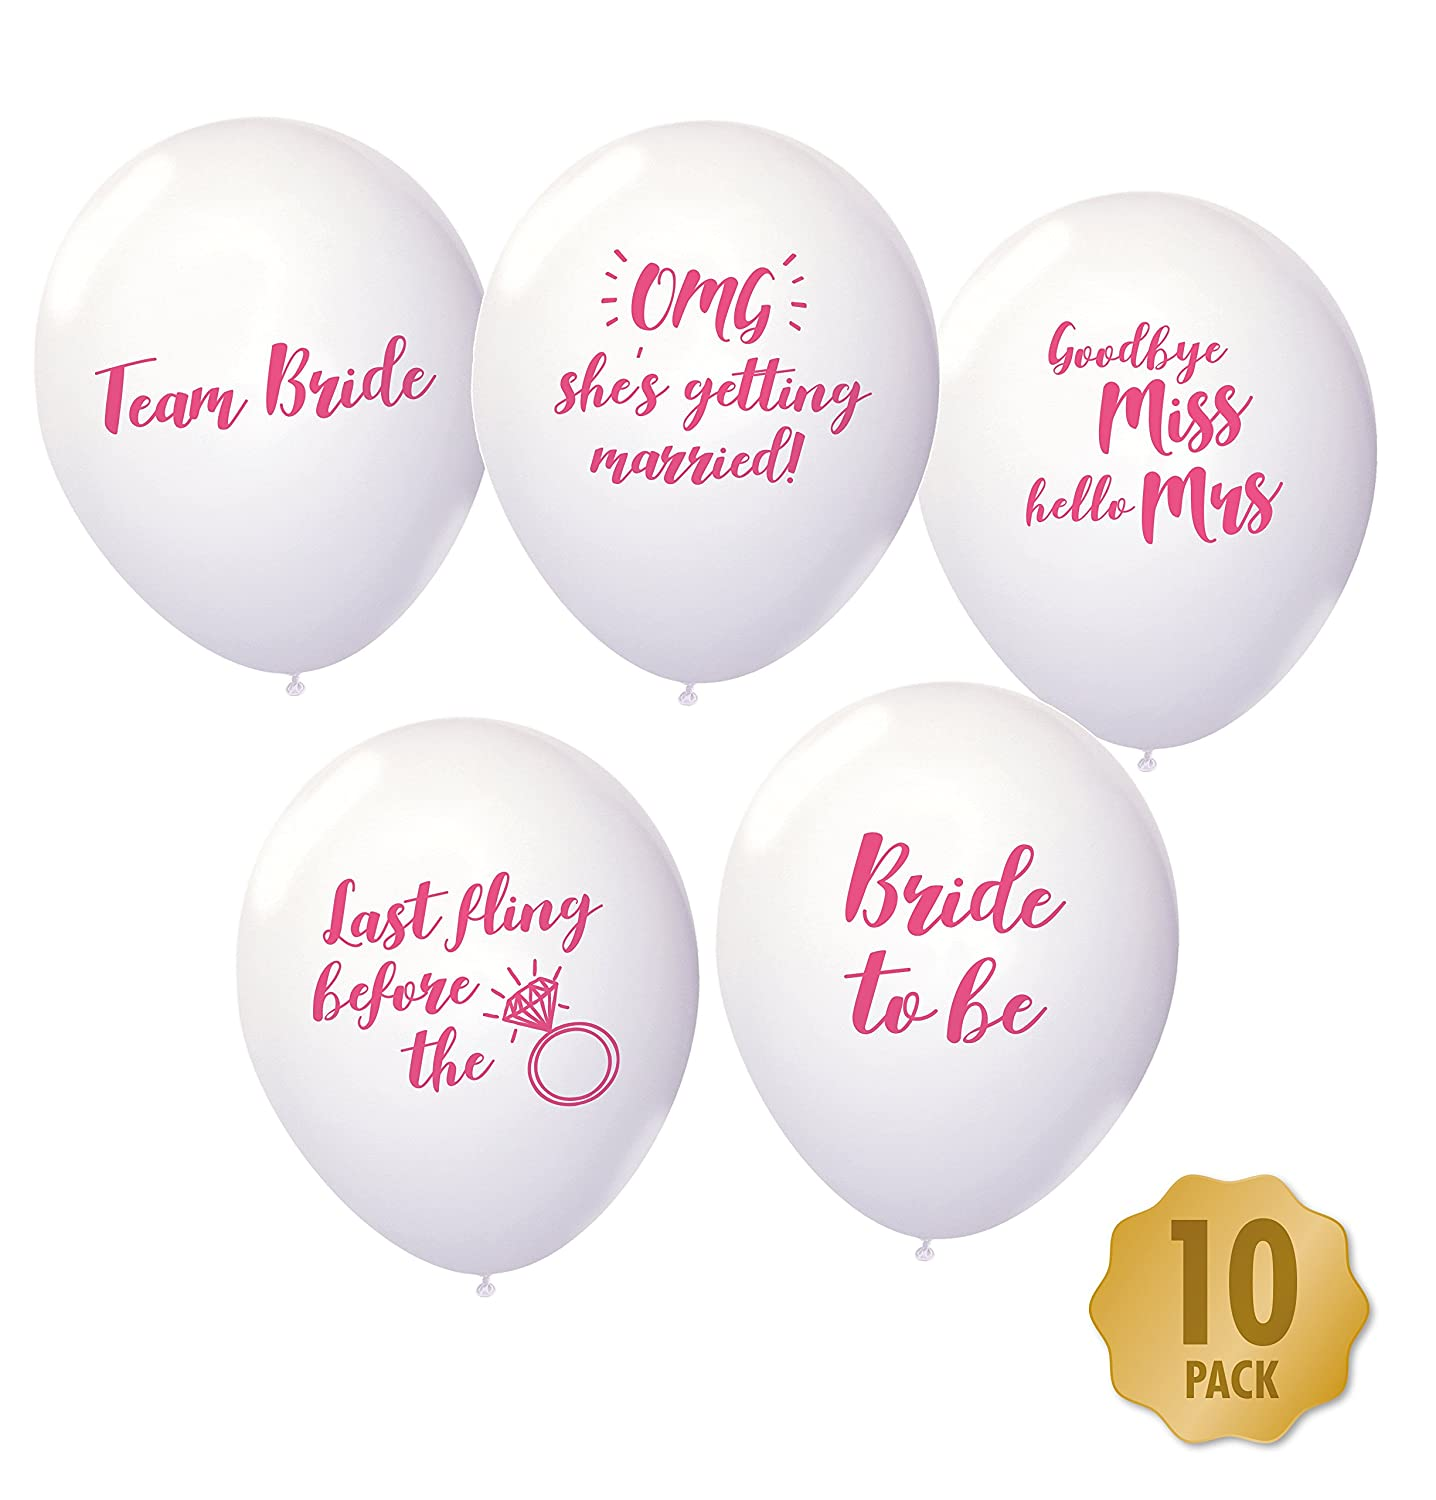 Hen Party Balloons - Pack Of 10 Mixed White & Pink Funny Classy ...